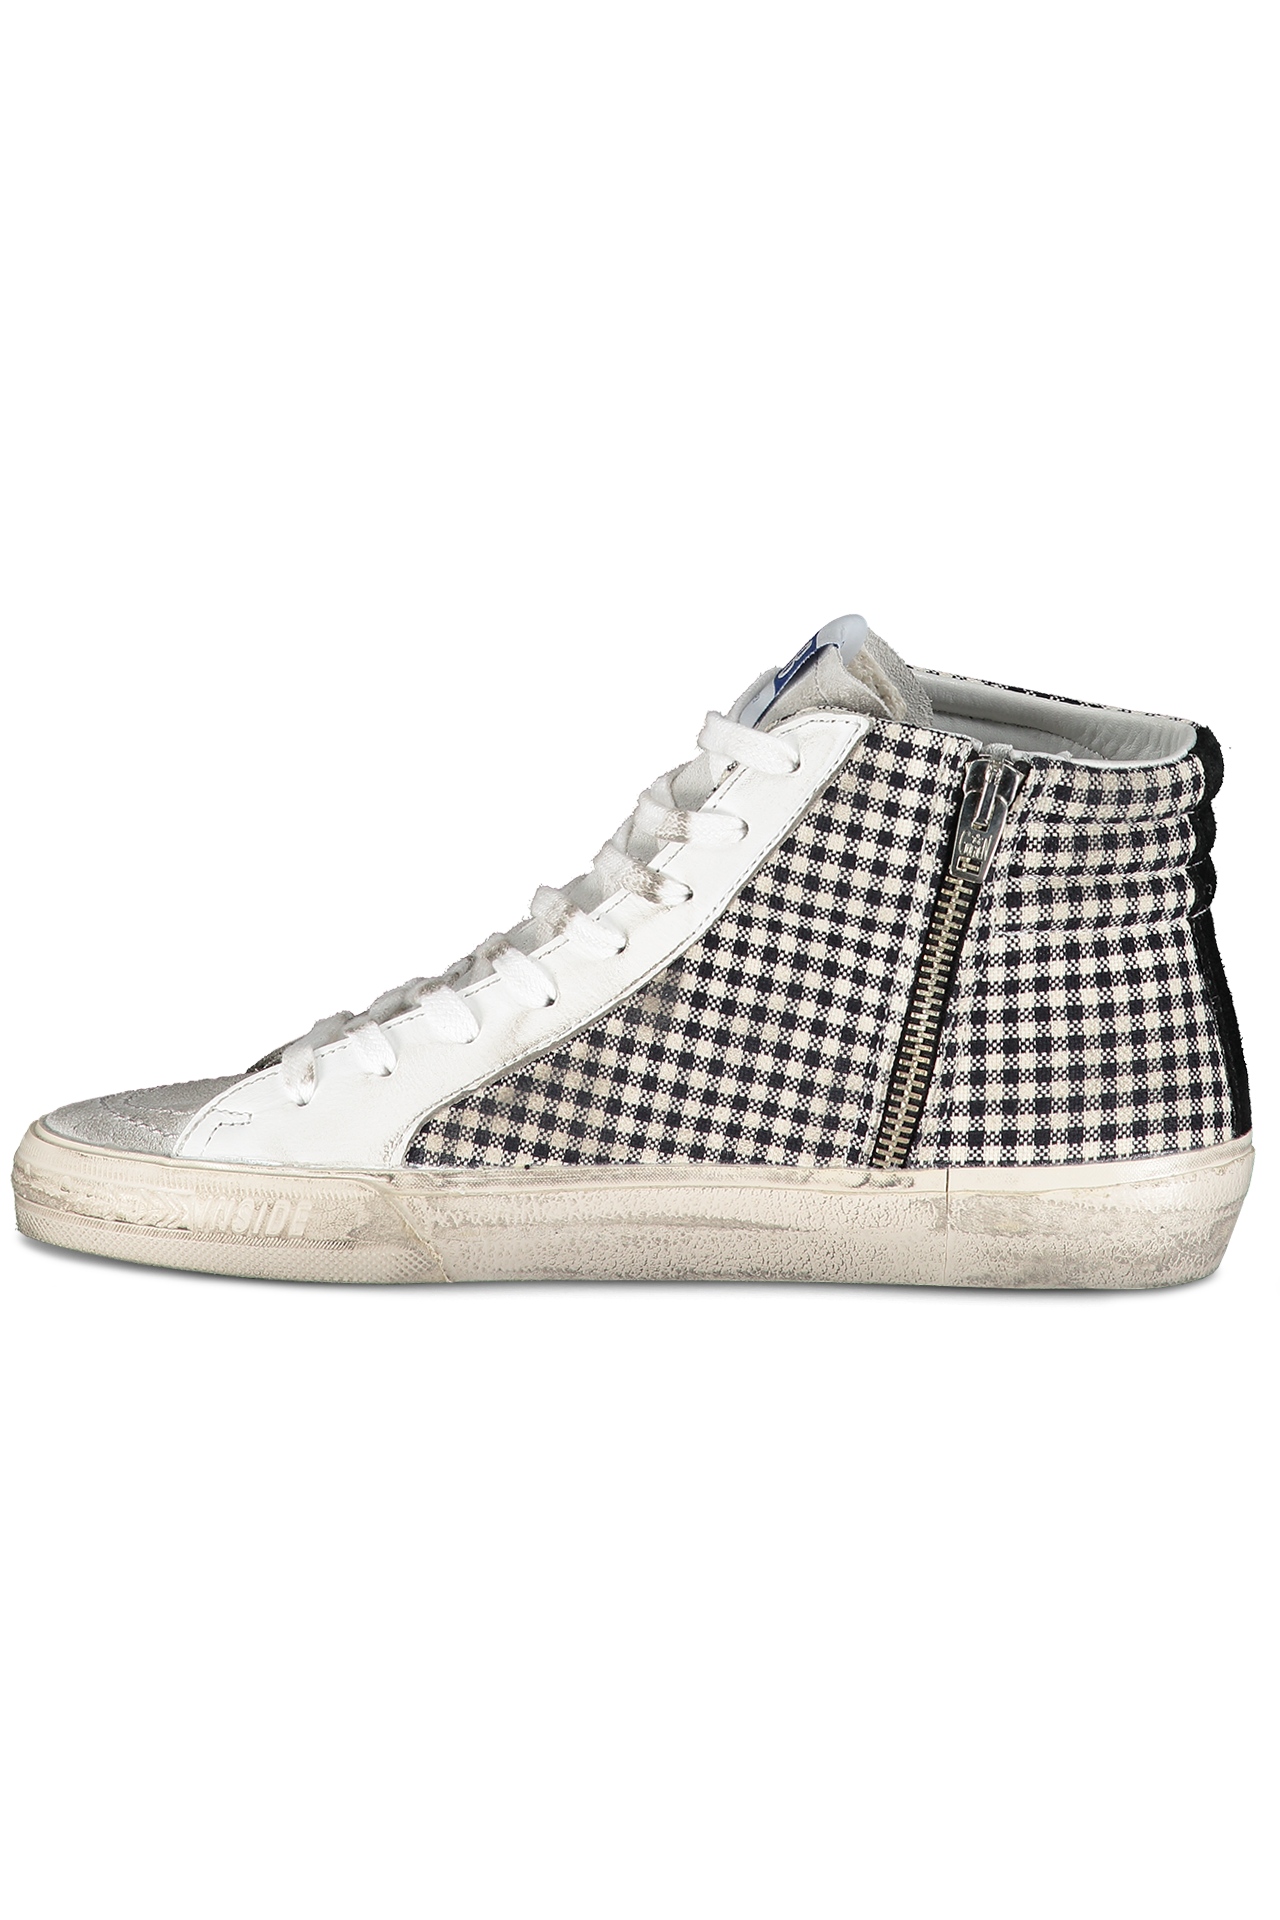 Slide Sneaker White Check